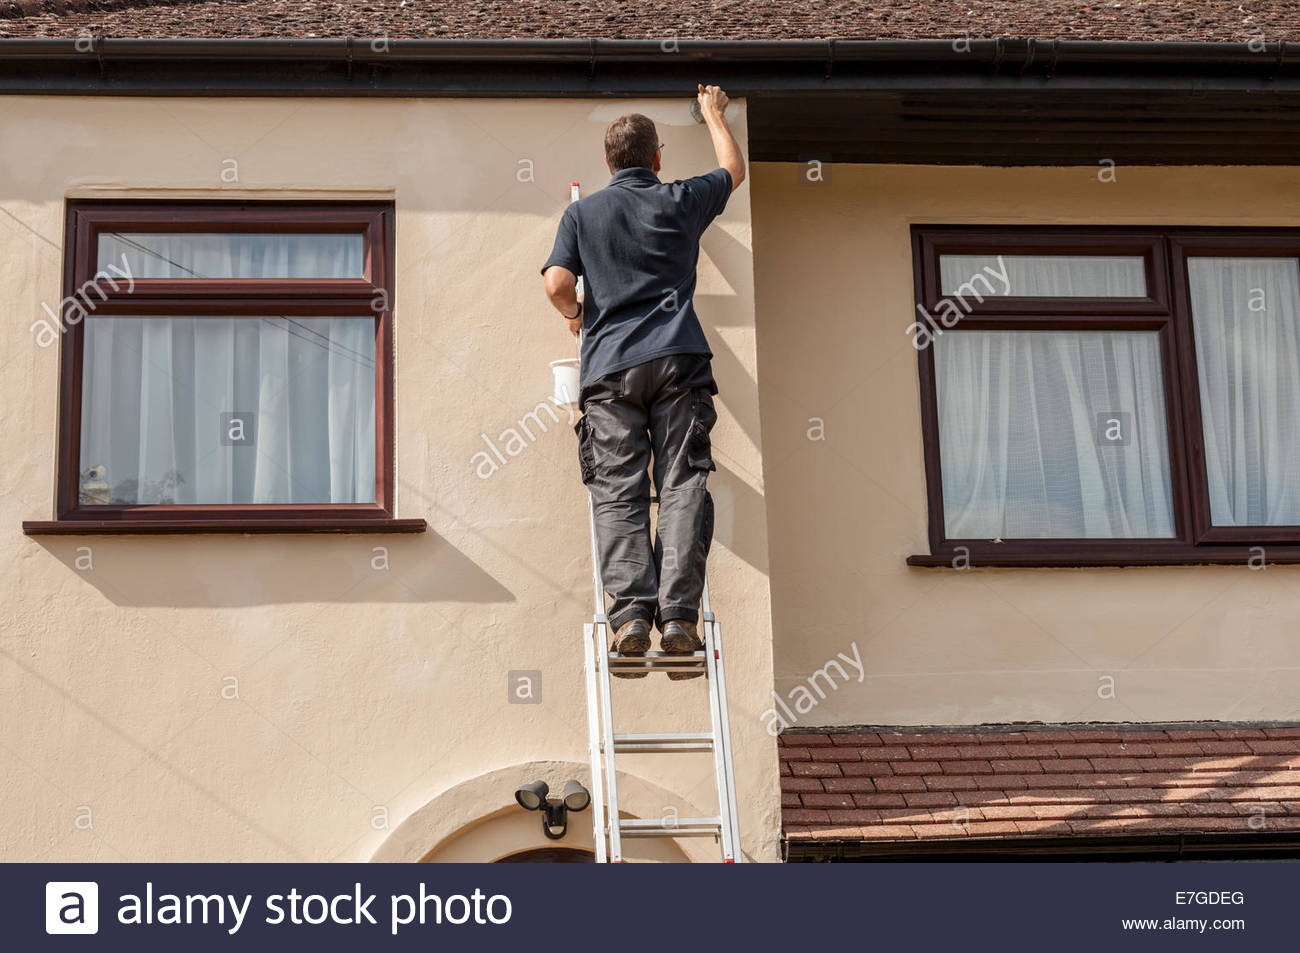 Man standing on a ladder painting house exterior Stock Photo